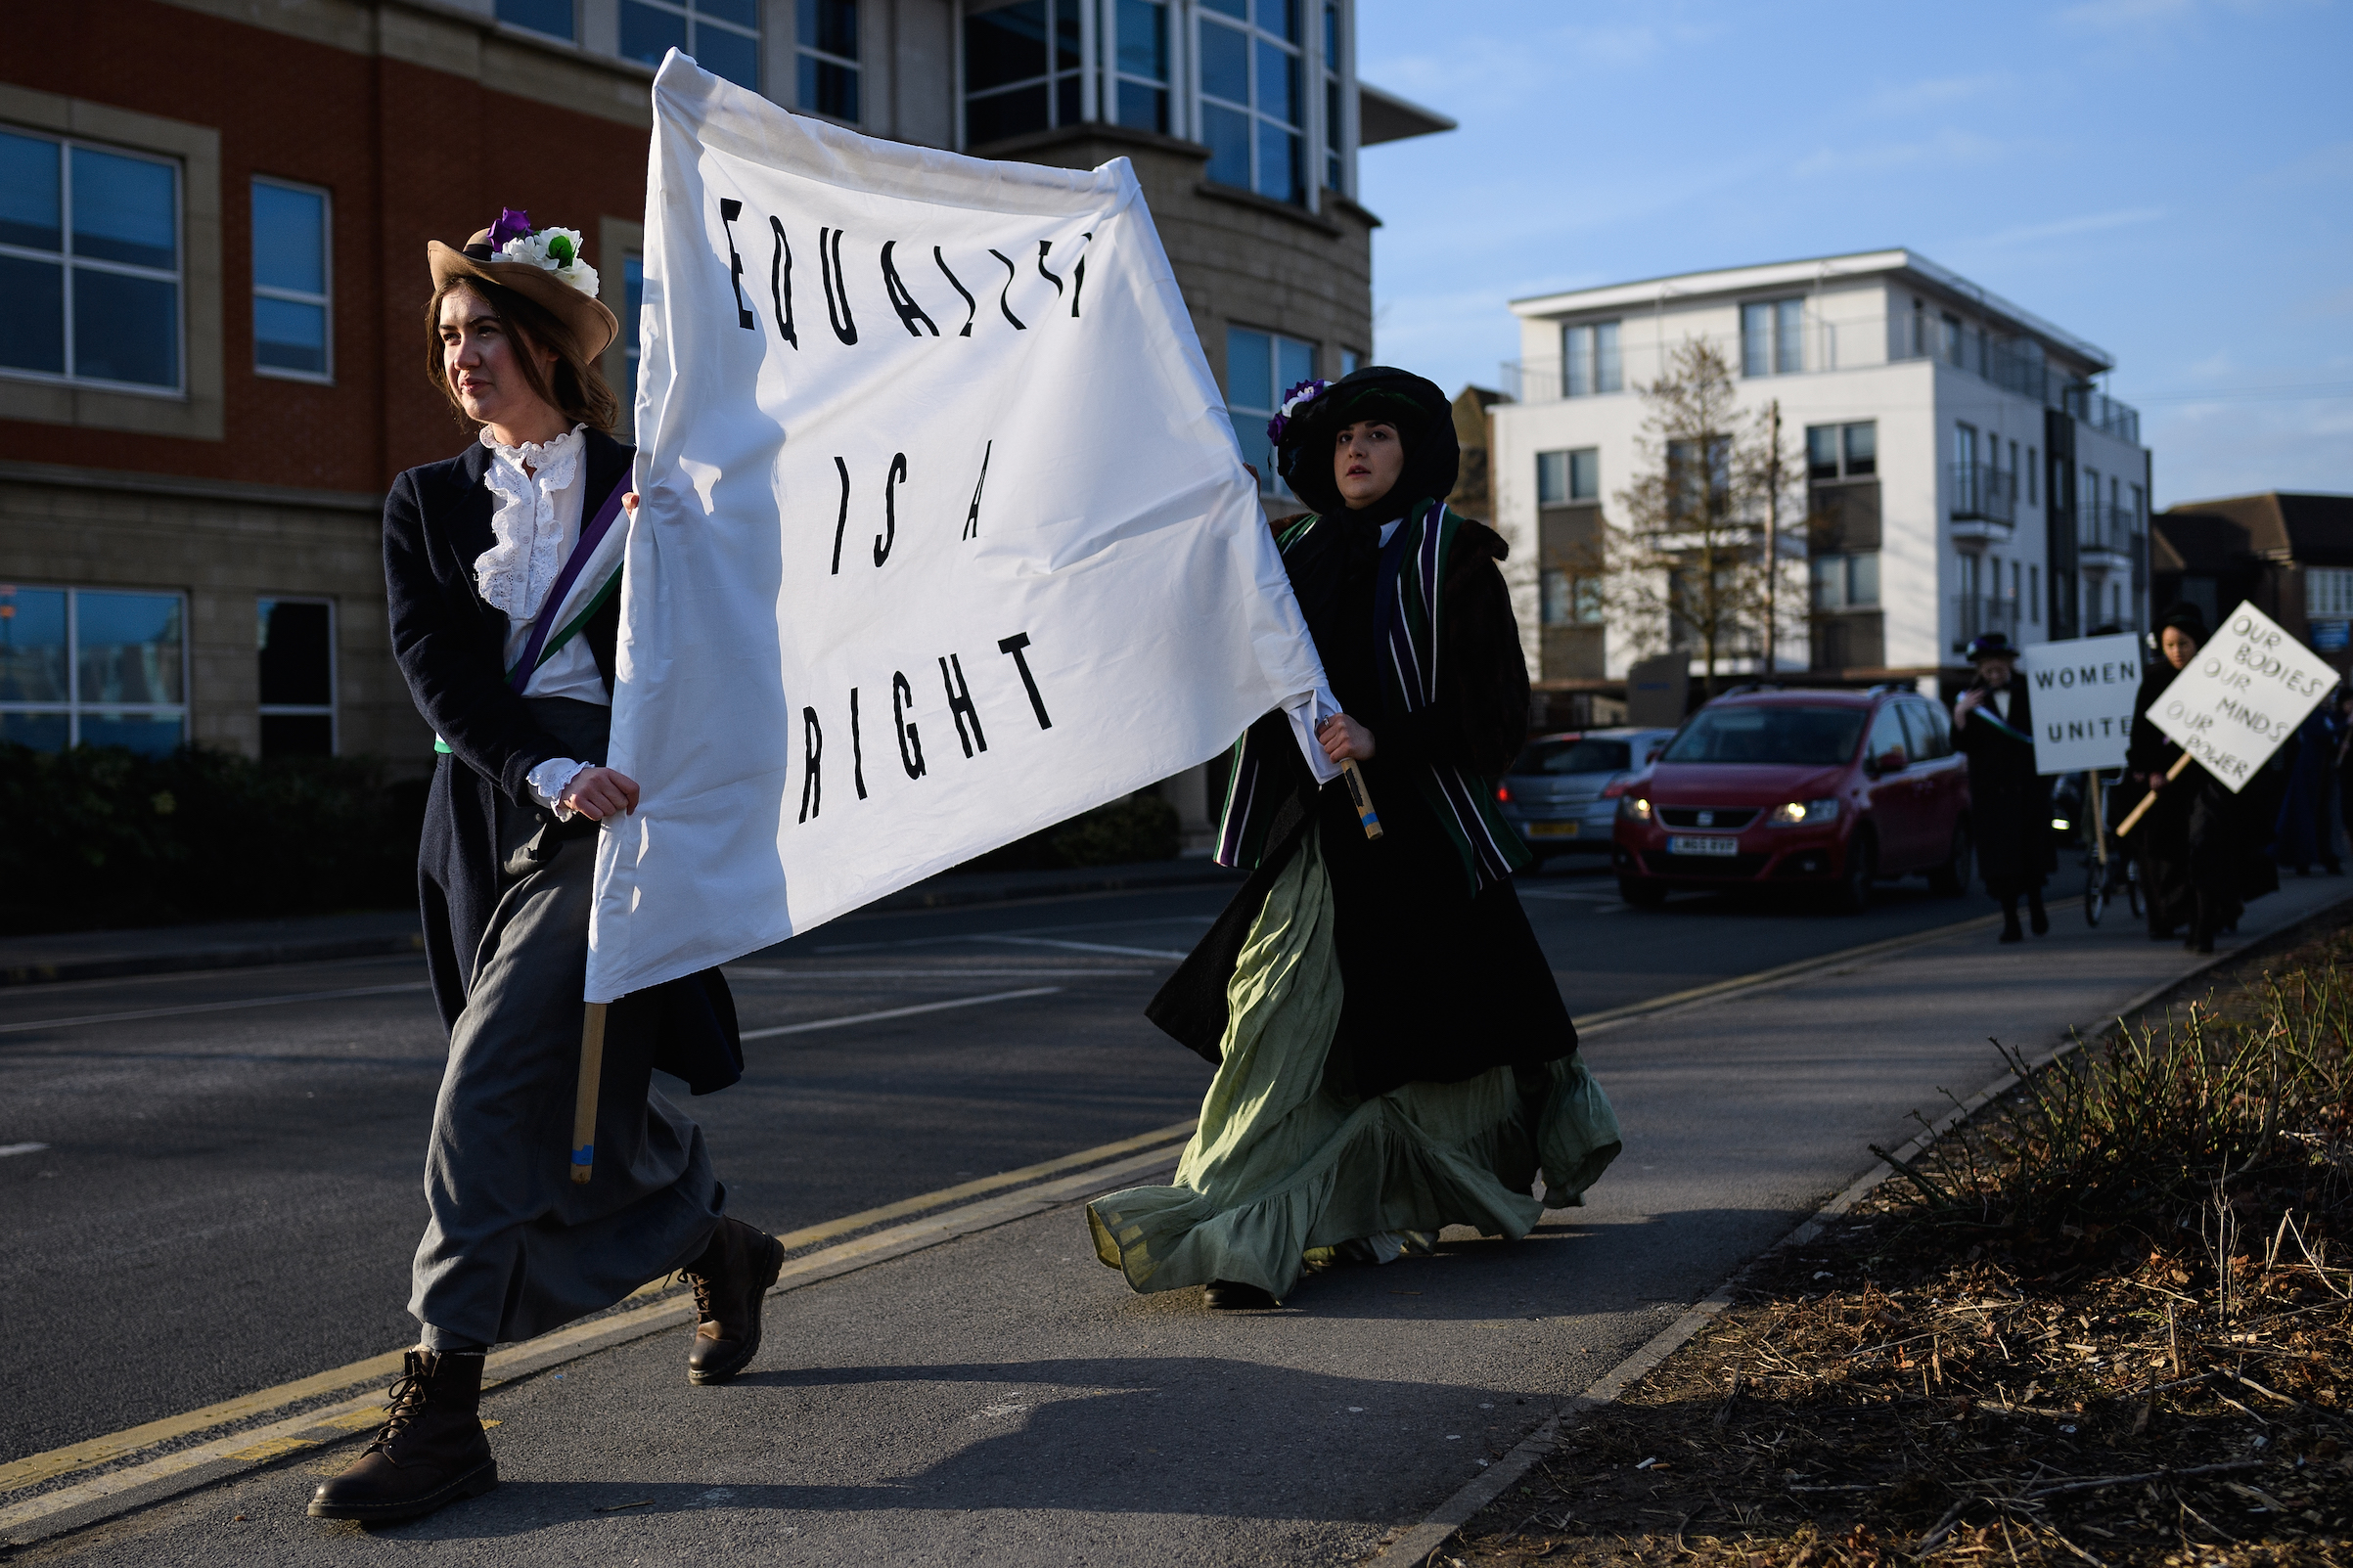 Students recreate a suffragette protest march through the town center at Royal Holloway, University of London on Feb. 6, 2018 in Egham, England.